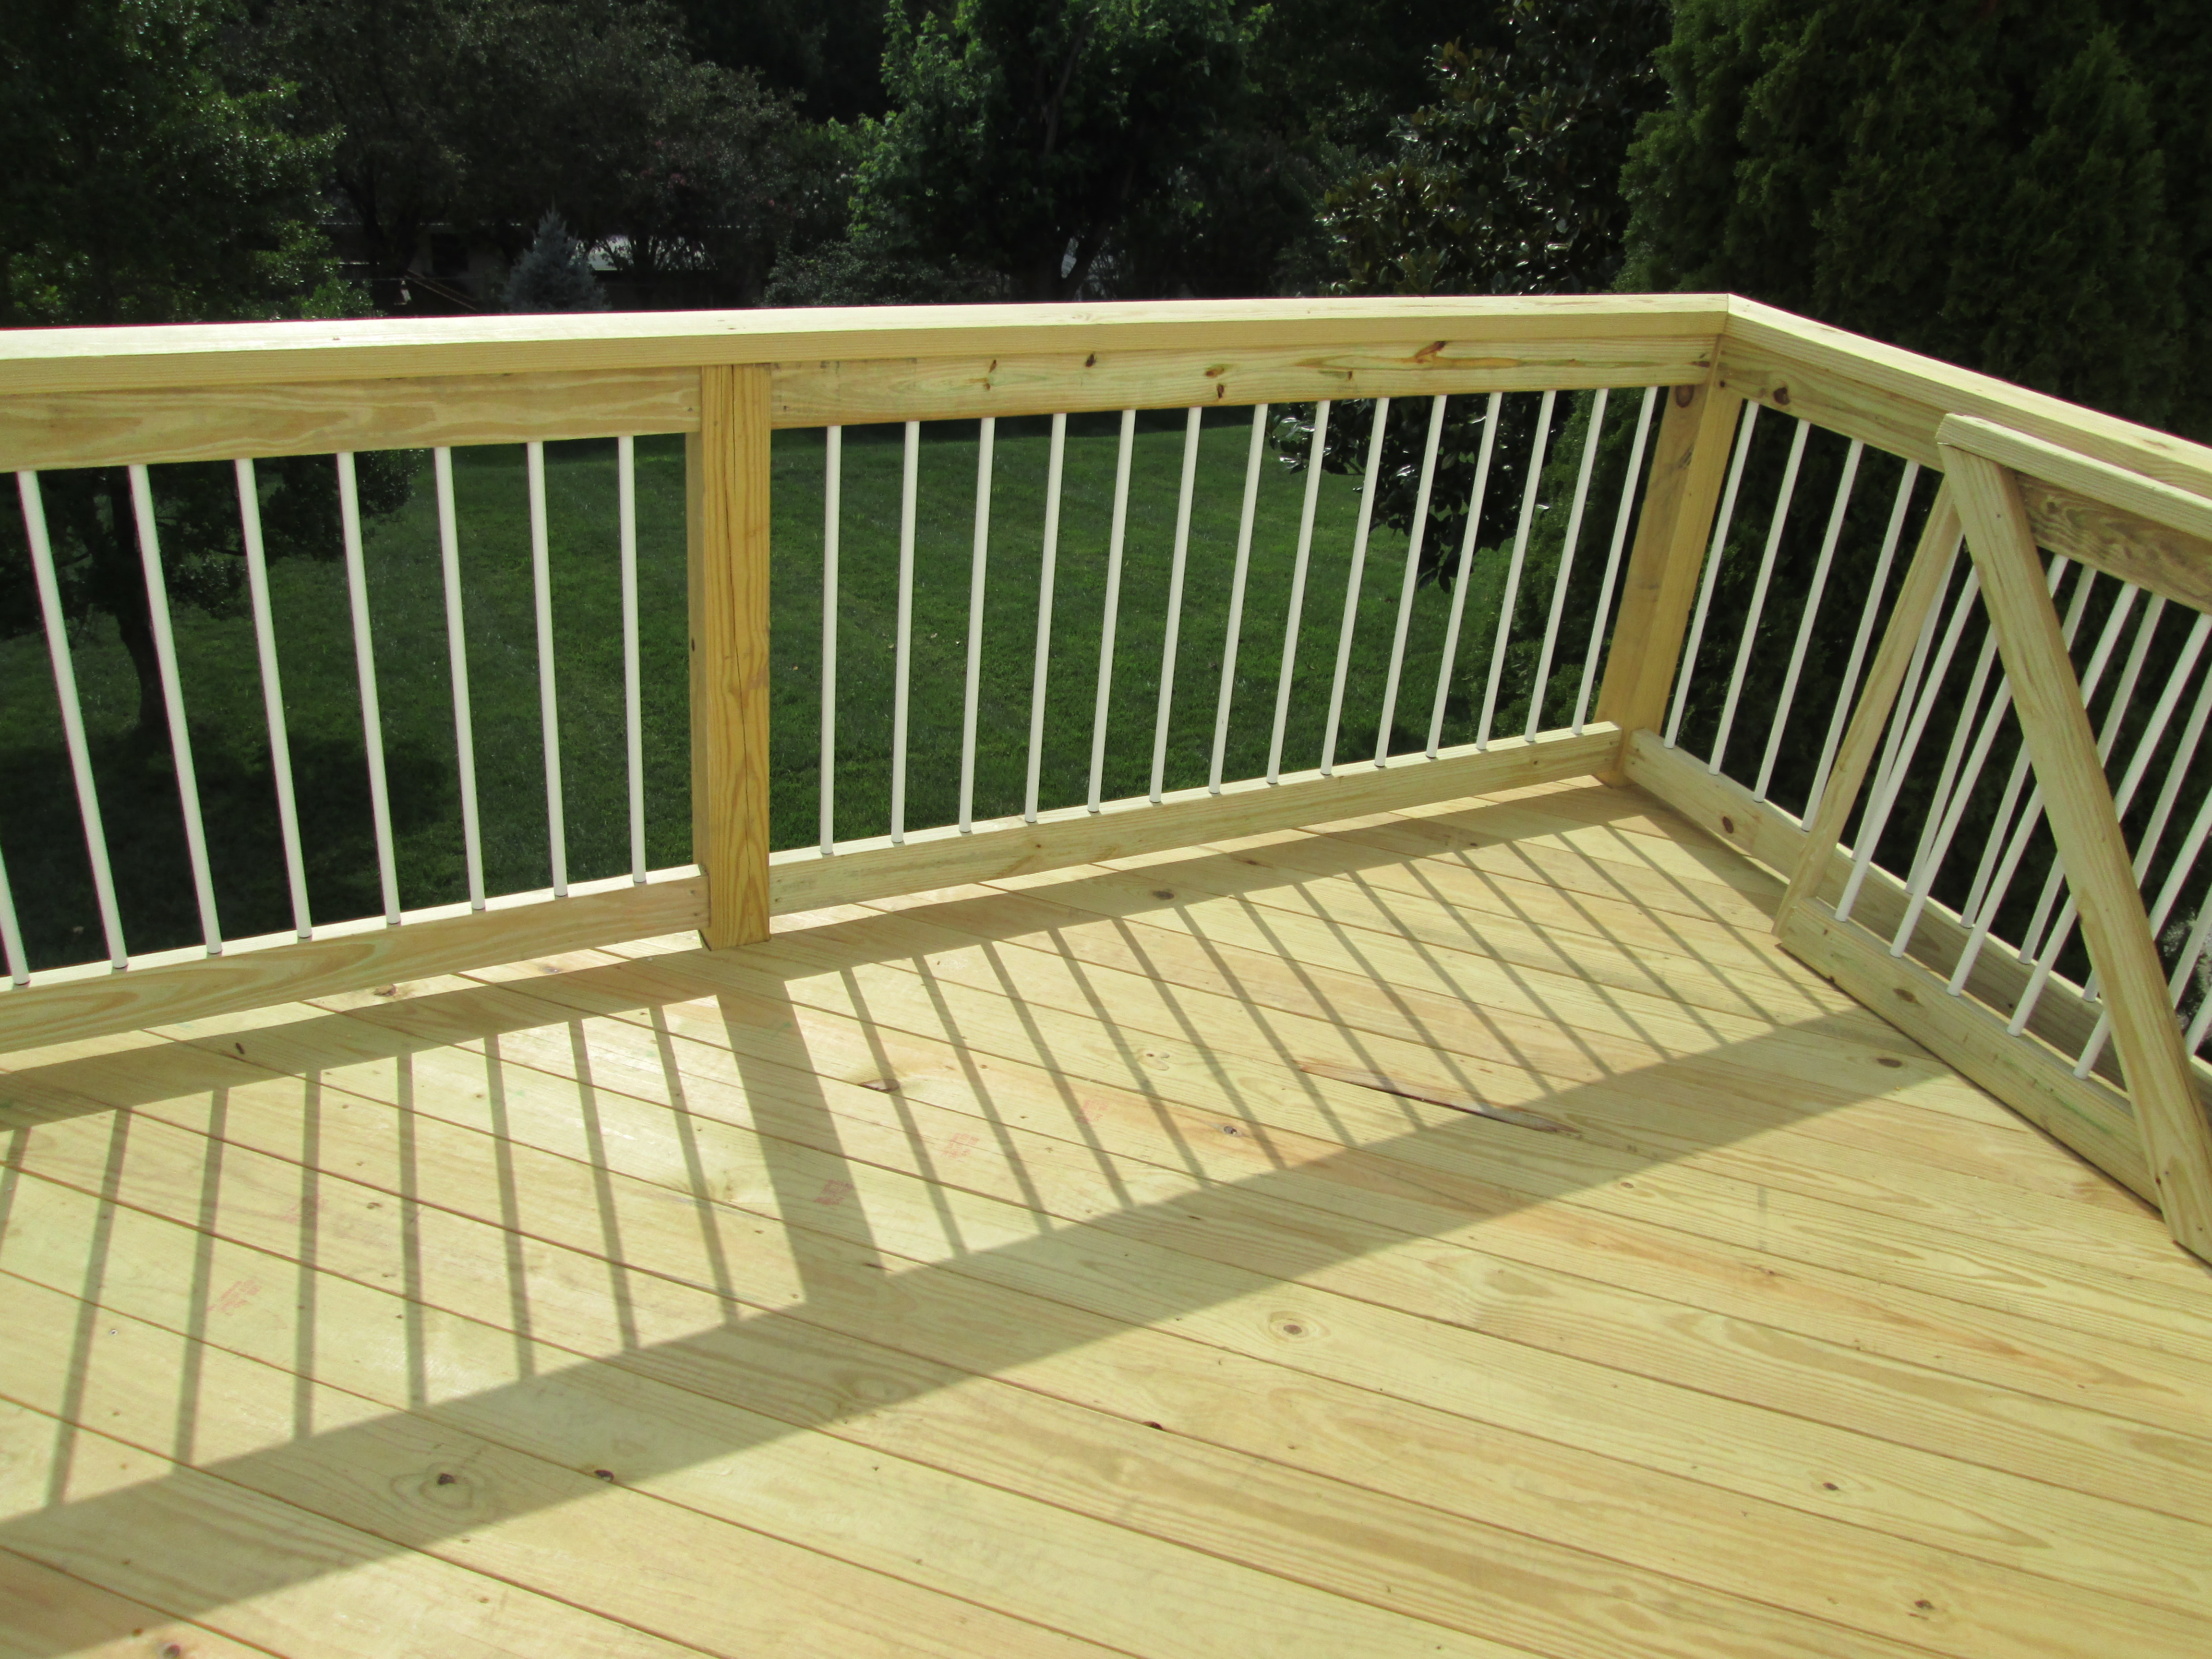 Deck design ideas real wood vs decks that look like wood for Deck architecture